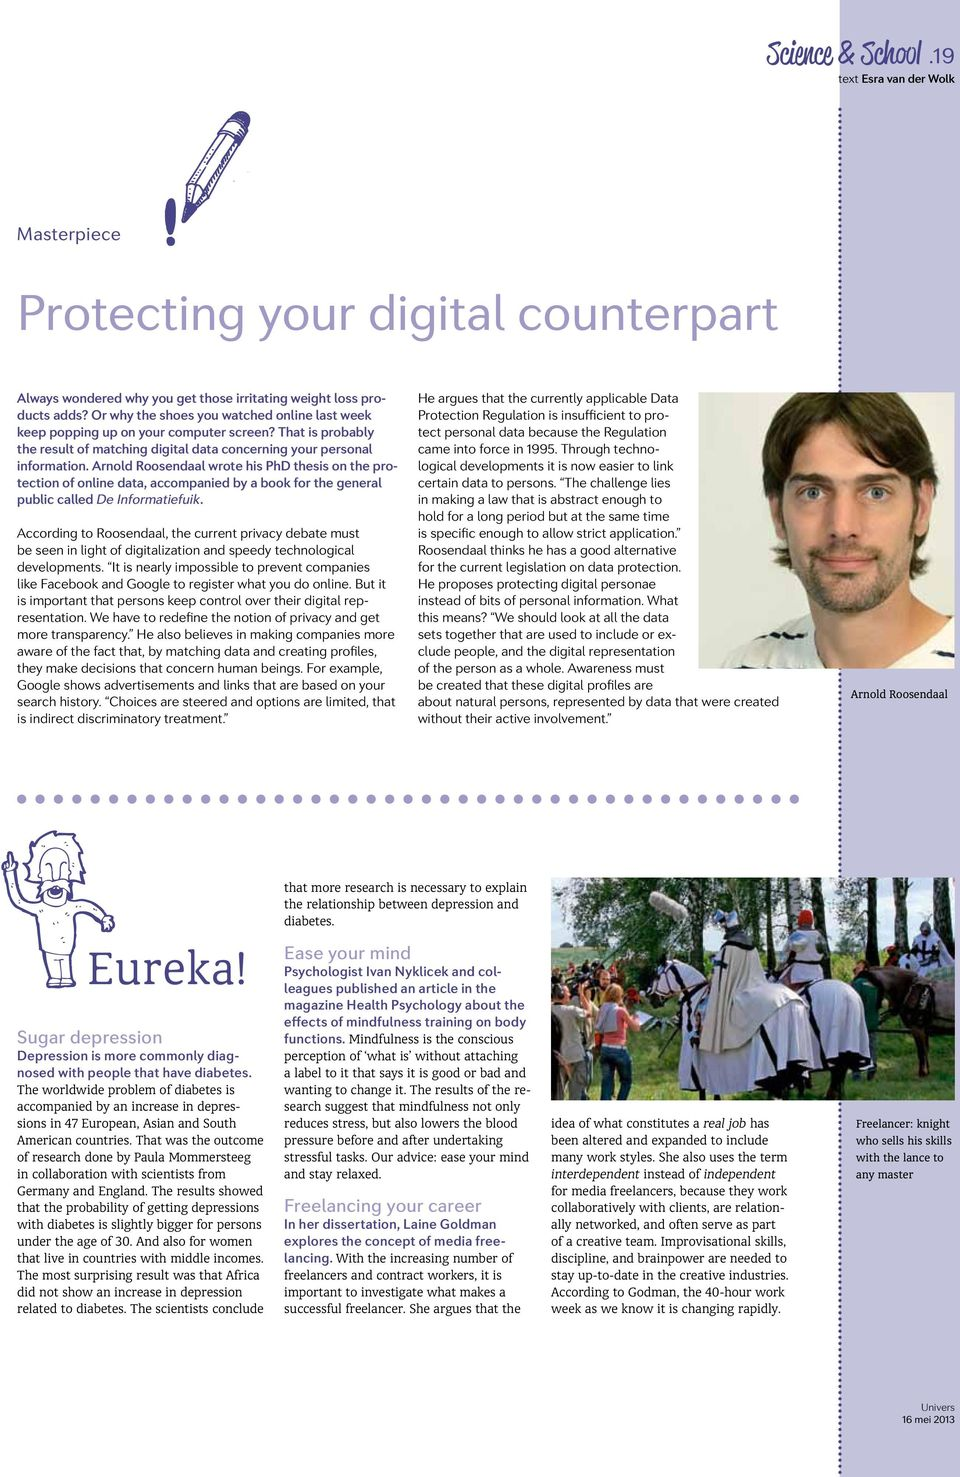 Arnold Roosendaal wrote his PhD thesis on the protection of online data, accompanied by a book for the general public called De Informatiefuik.